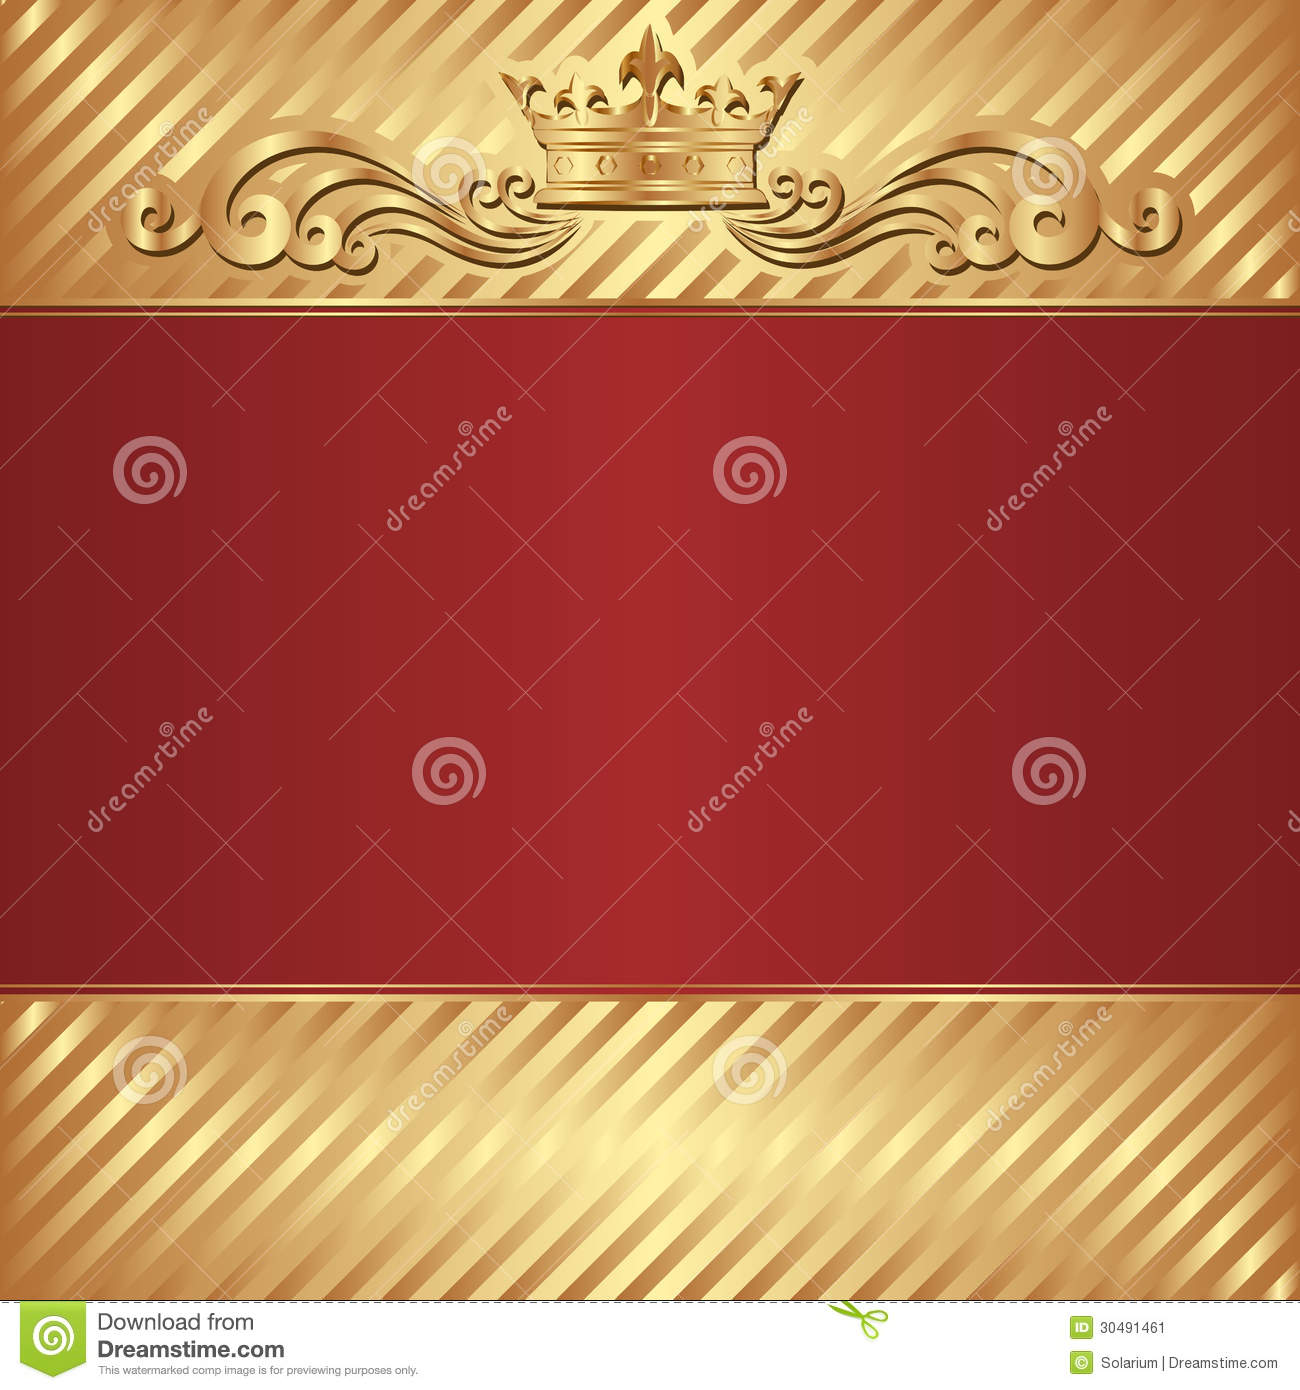 Royal background stock vector. Illustration of classical ...